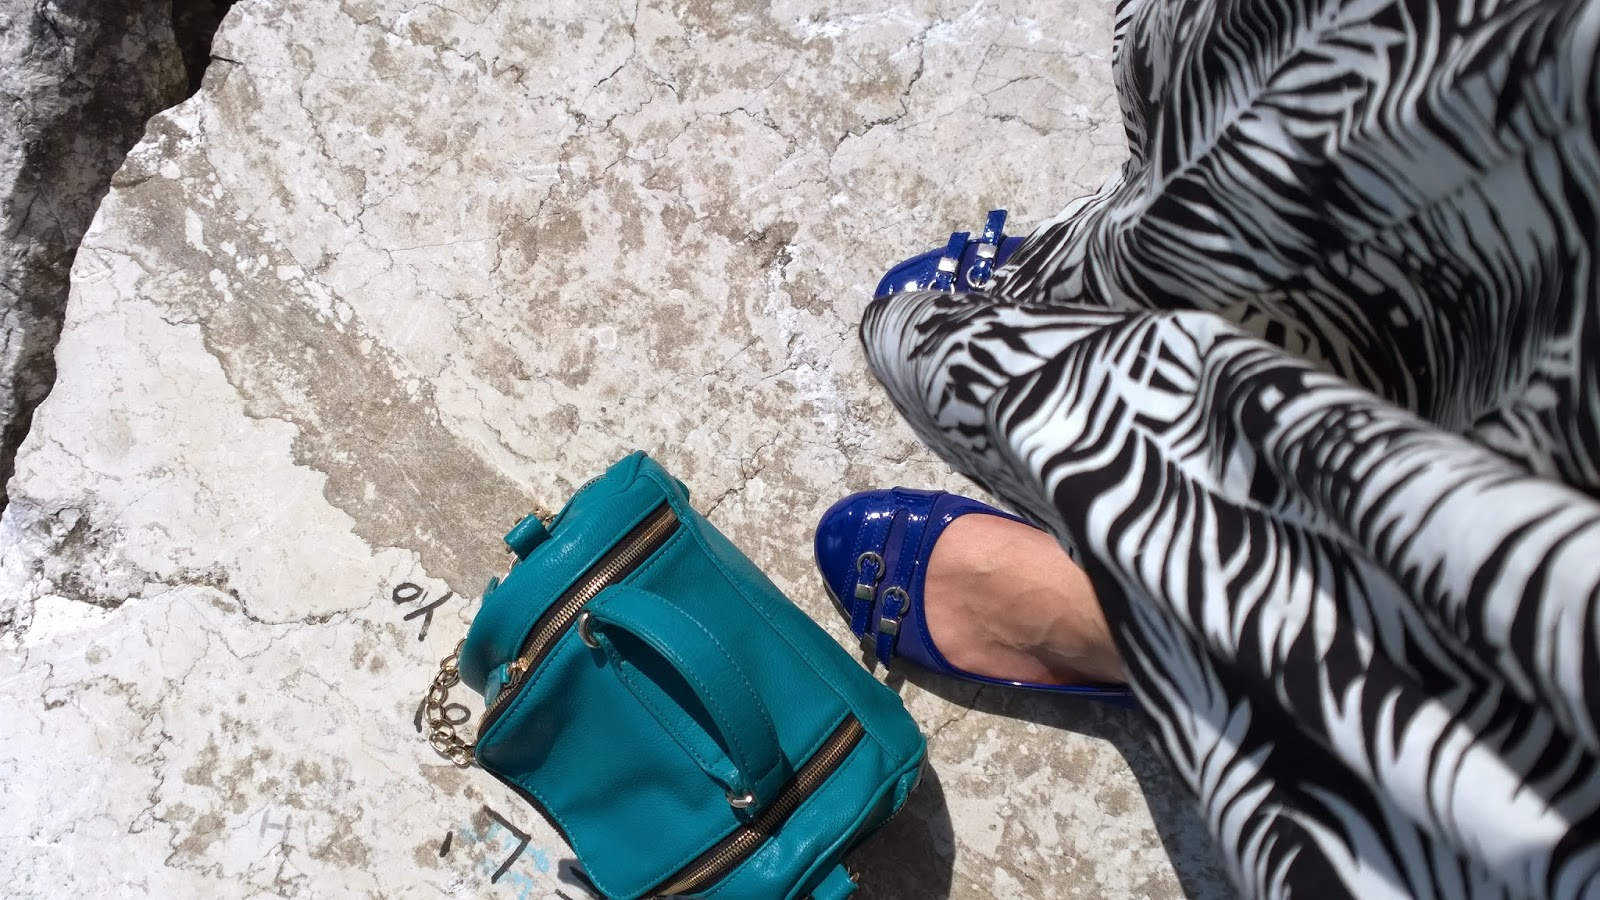 Blue flats, emerald bag, printed skirt